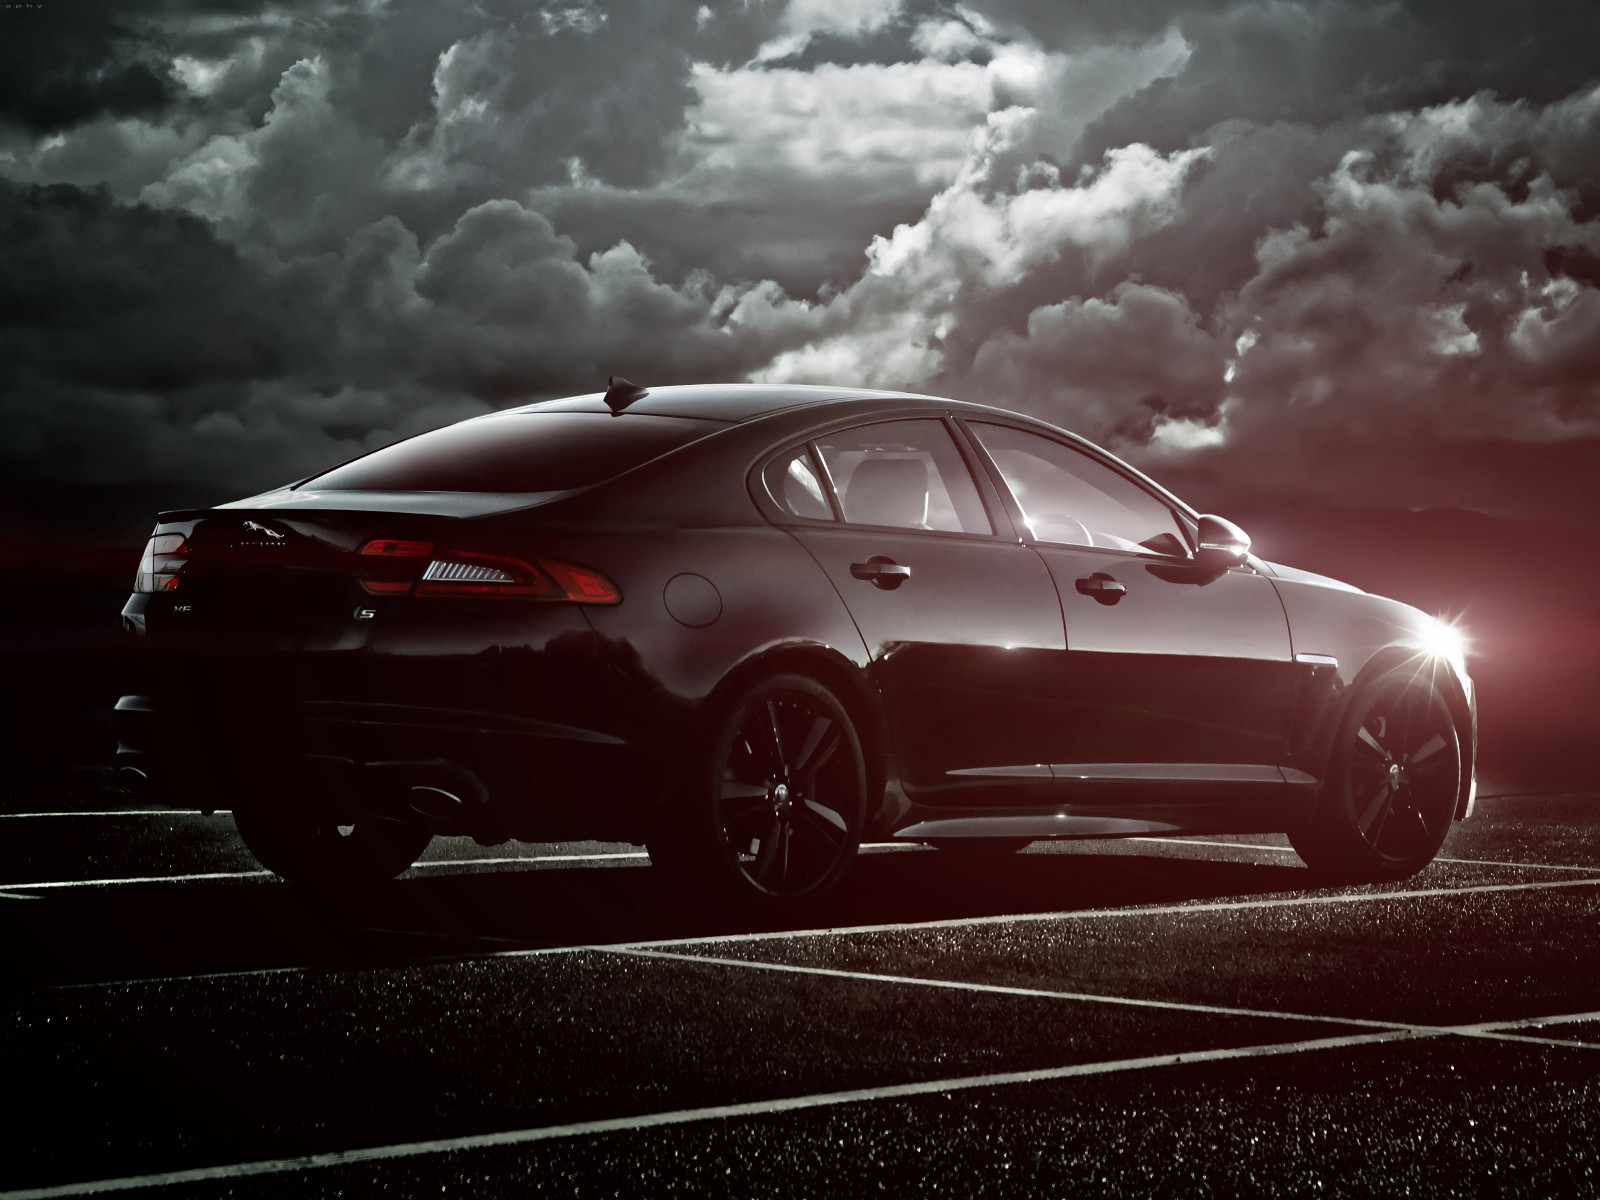 Jaguar XF S wallpaper 1600x1200